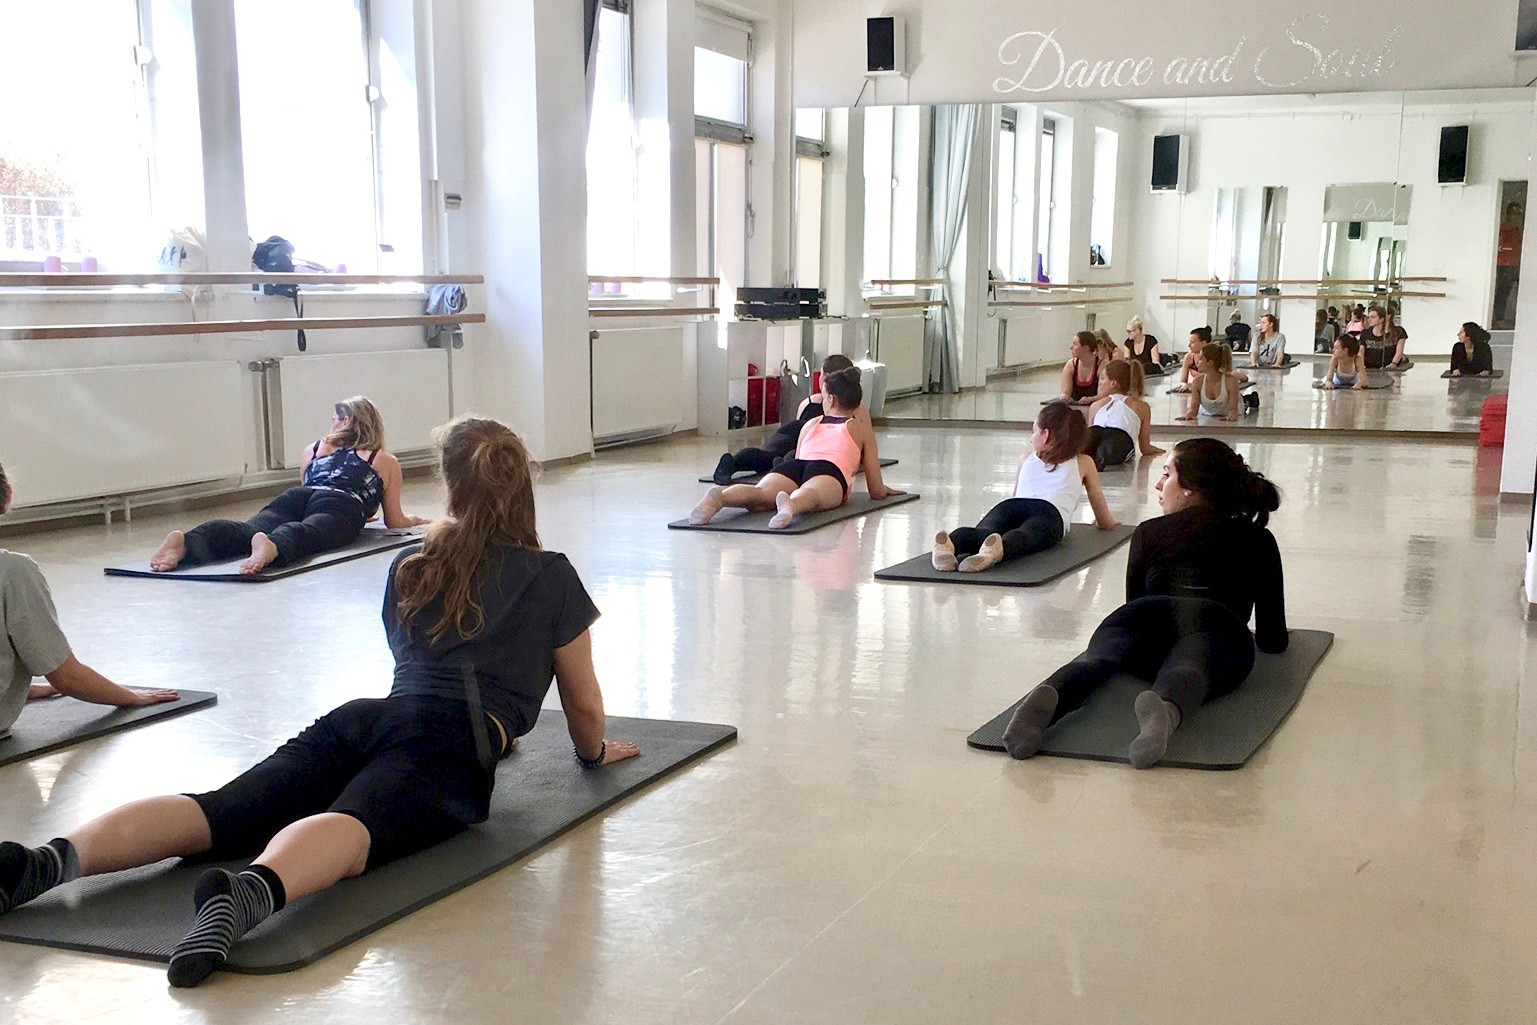 Dance and Soul, Ballettschule, Happy Stretch, Sylvia Weikert, Pasing, Bewegung, Freude